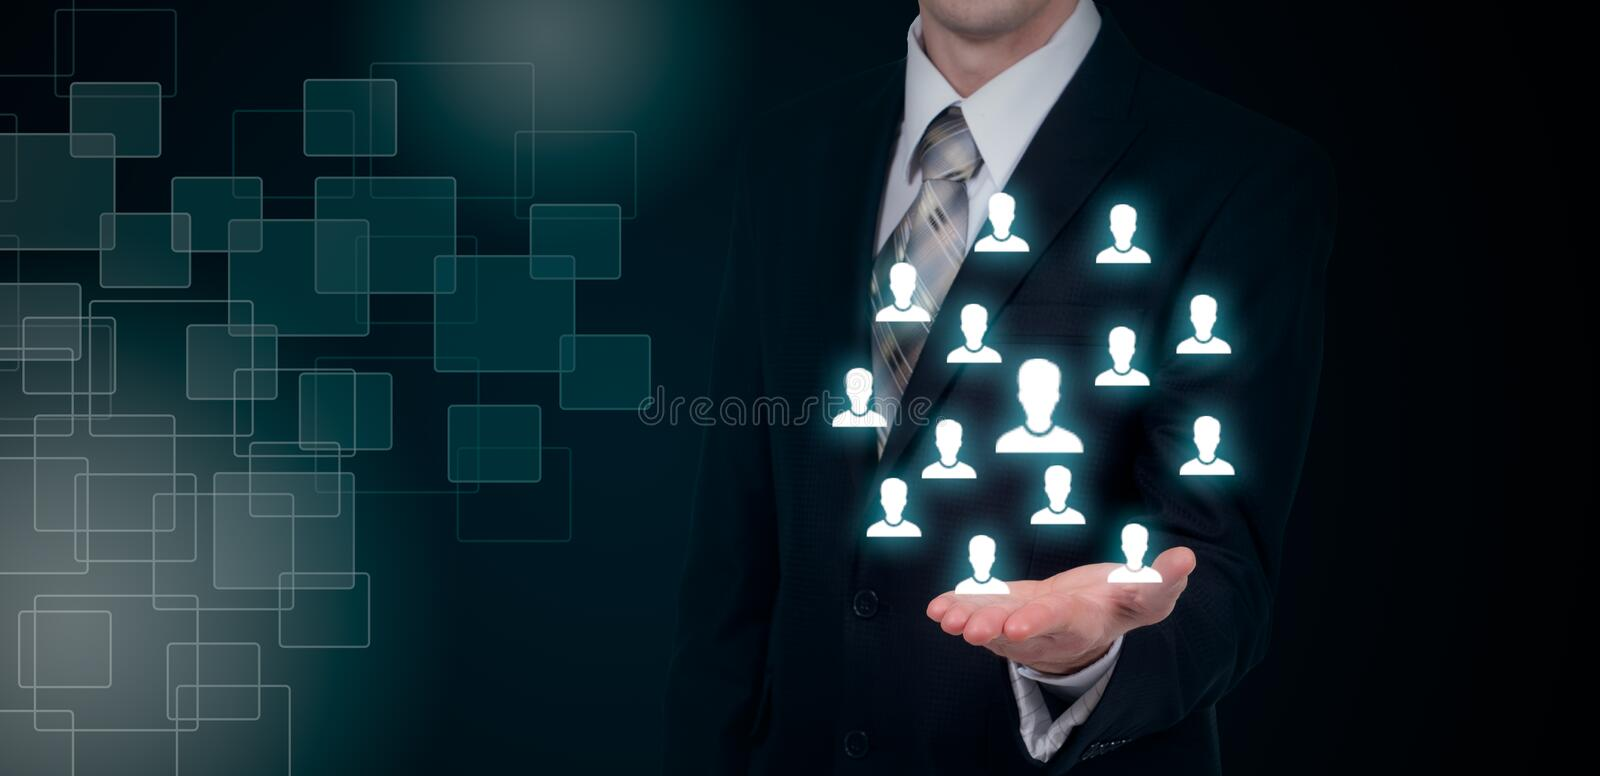 Hand carrying businessman icon network - HR teamwork and leadership concept. royalty free stock photography